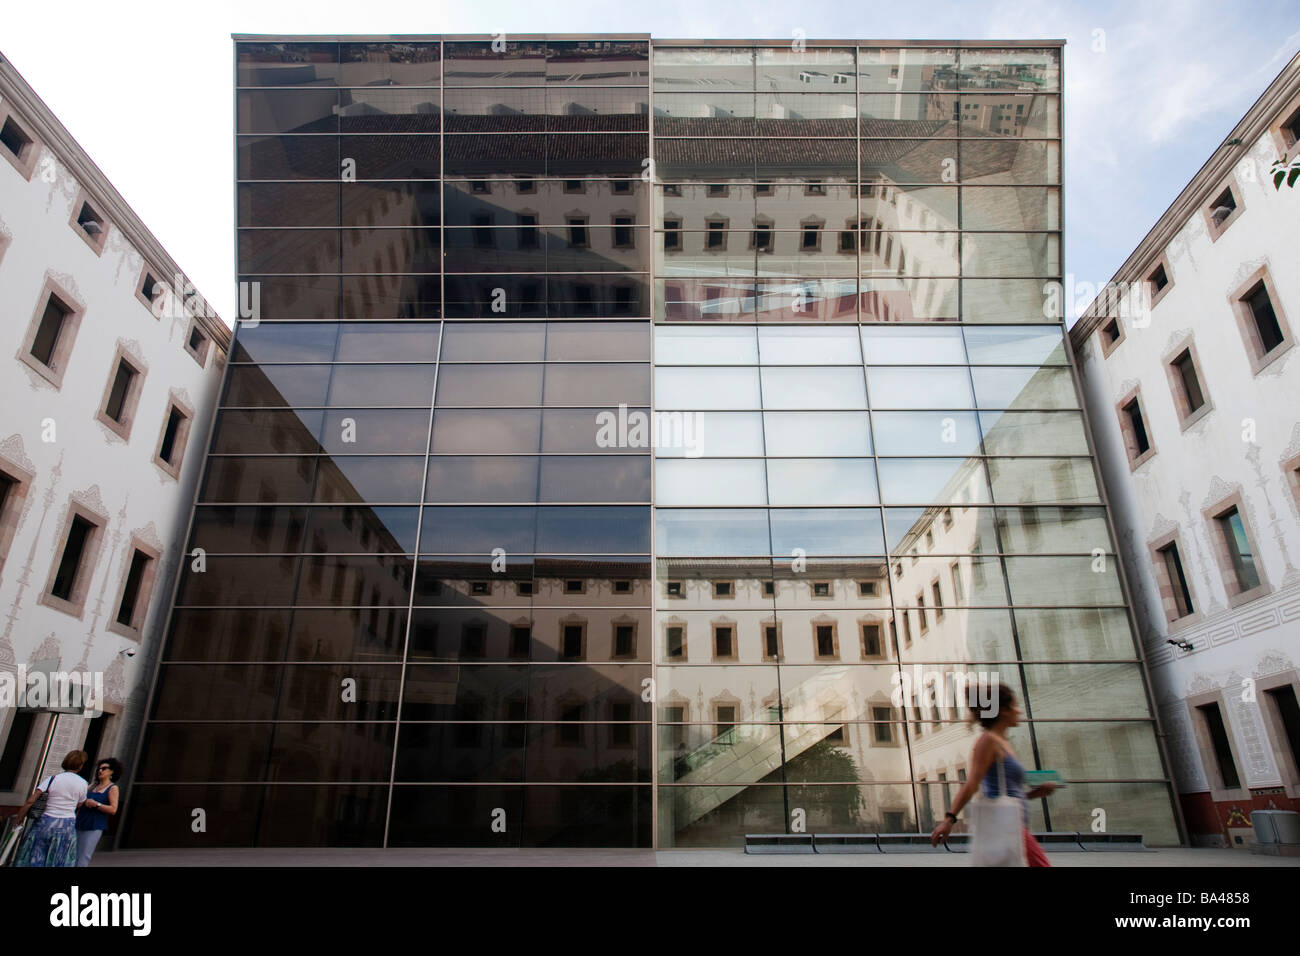 Yard of the Contemporary Culture Center town of Barcelona autonomous commnunity of Catalonia northeastern Spain - Stock Image